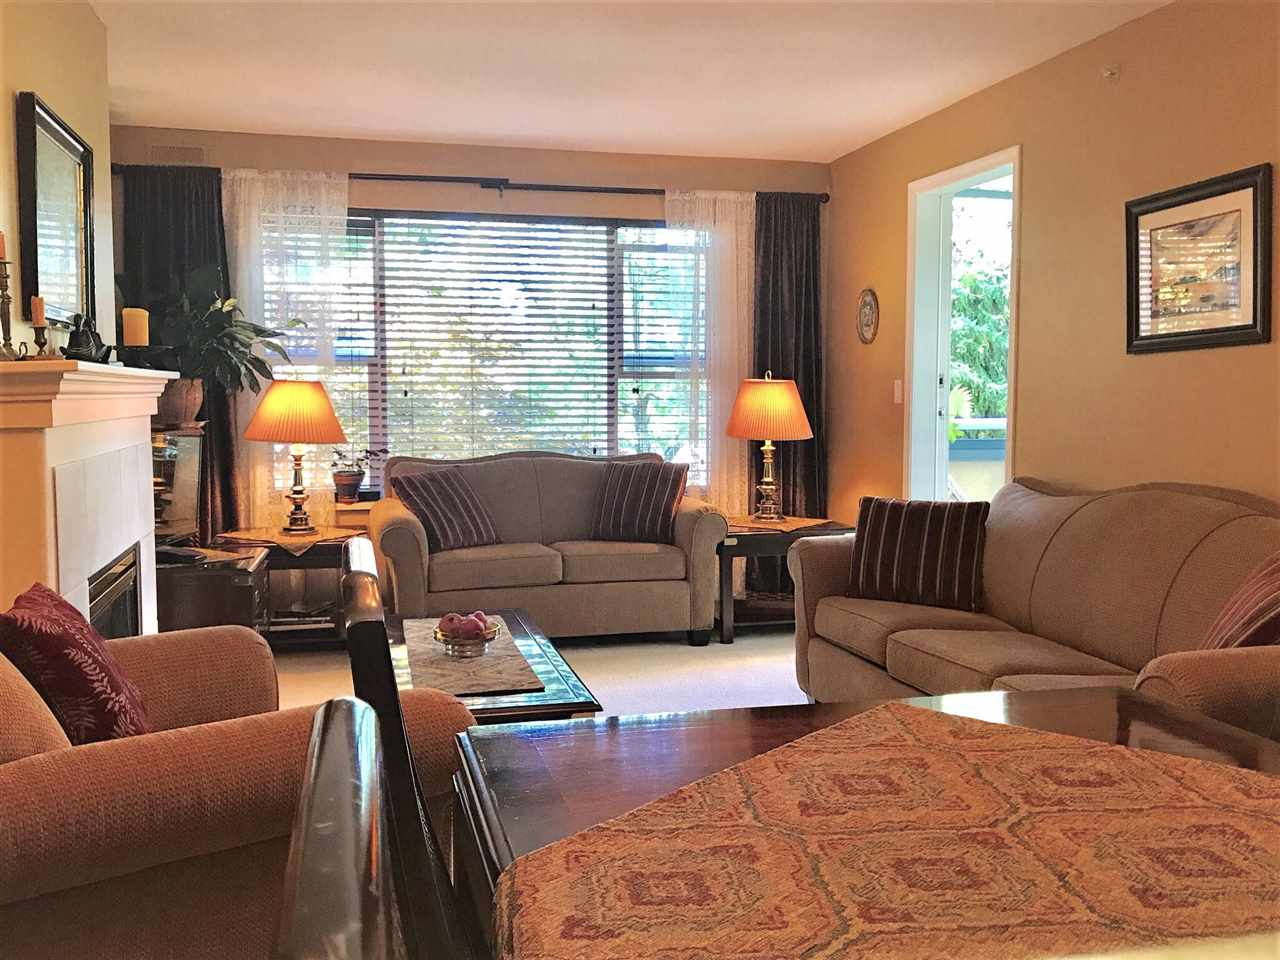 Condo Apartment at 208 5281 OAKMOUNT CRESCENT, Unit 208, Burnaby South, British Columbia. Image 2